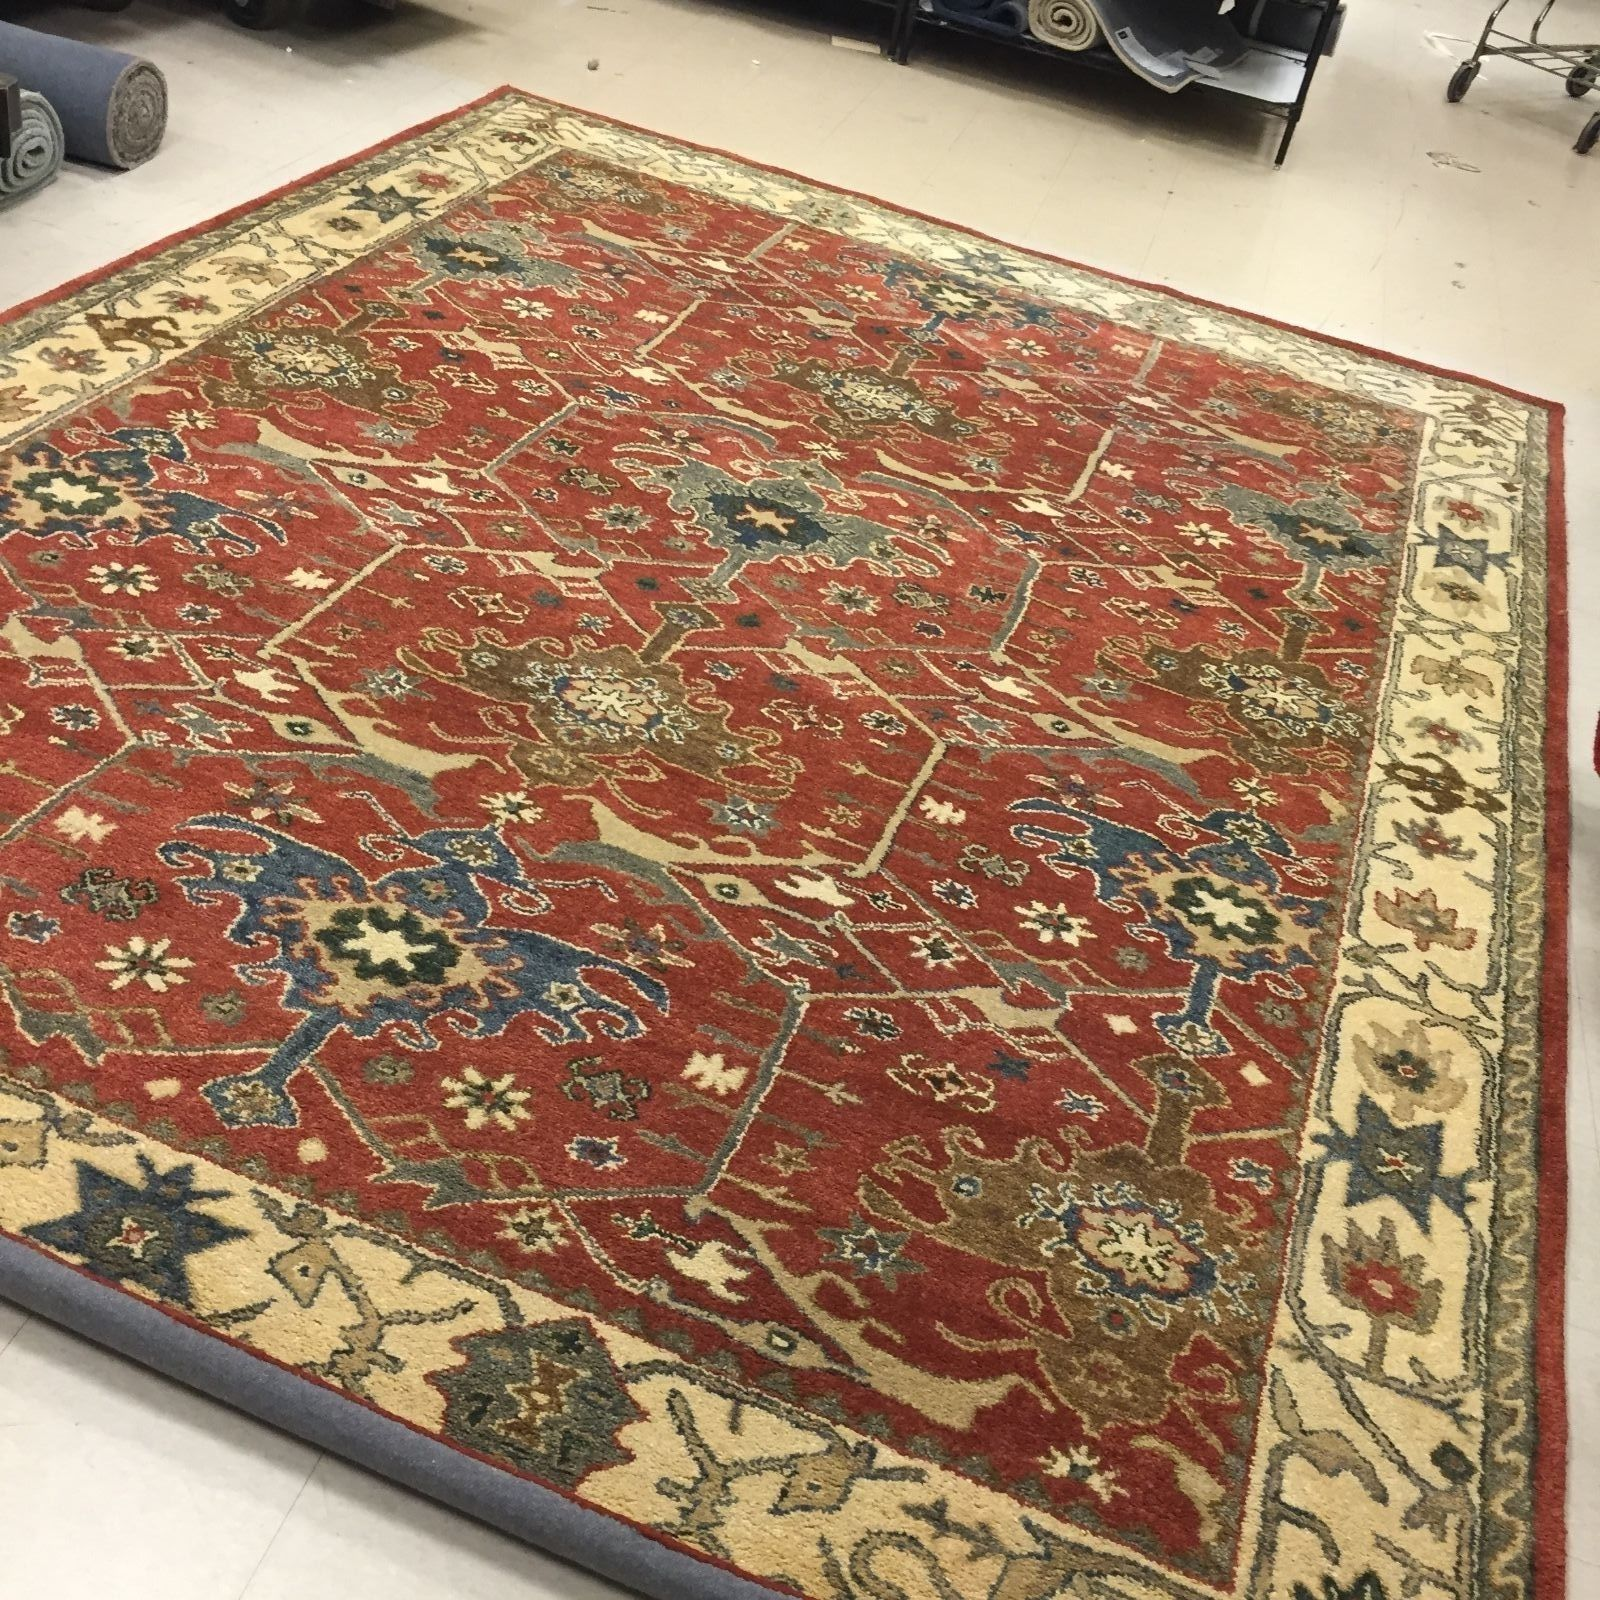 New Pottery Barn Channing Persian Style Rug 9 X 12 Nwt